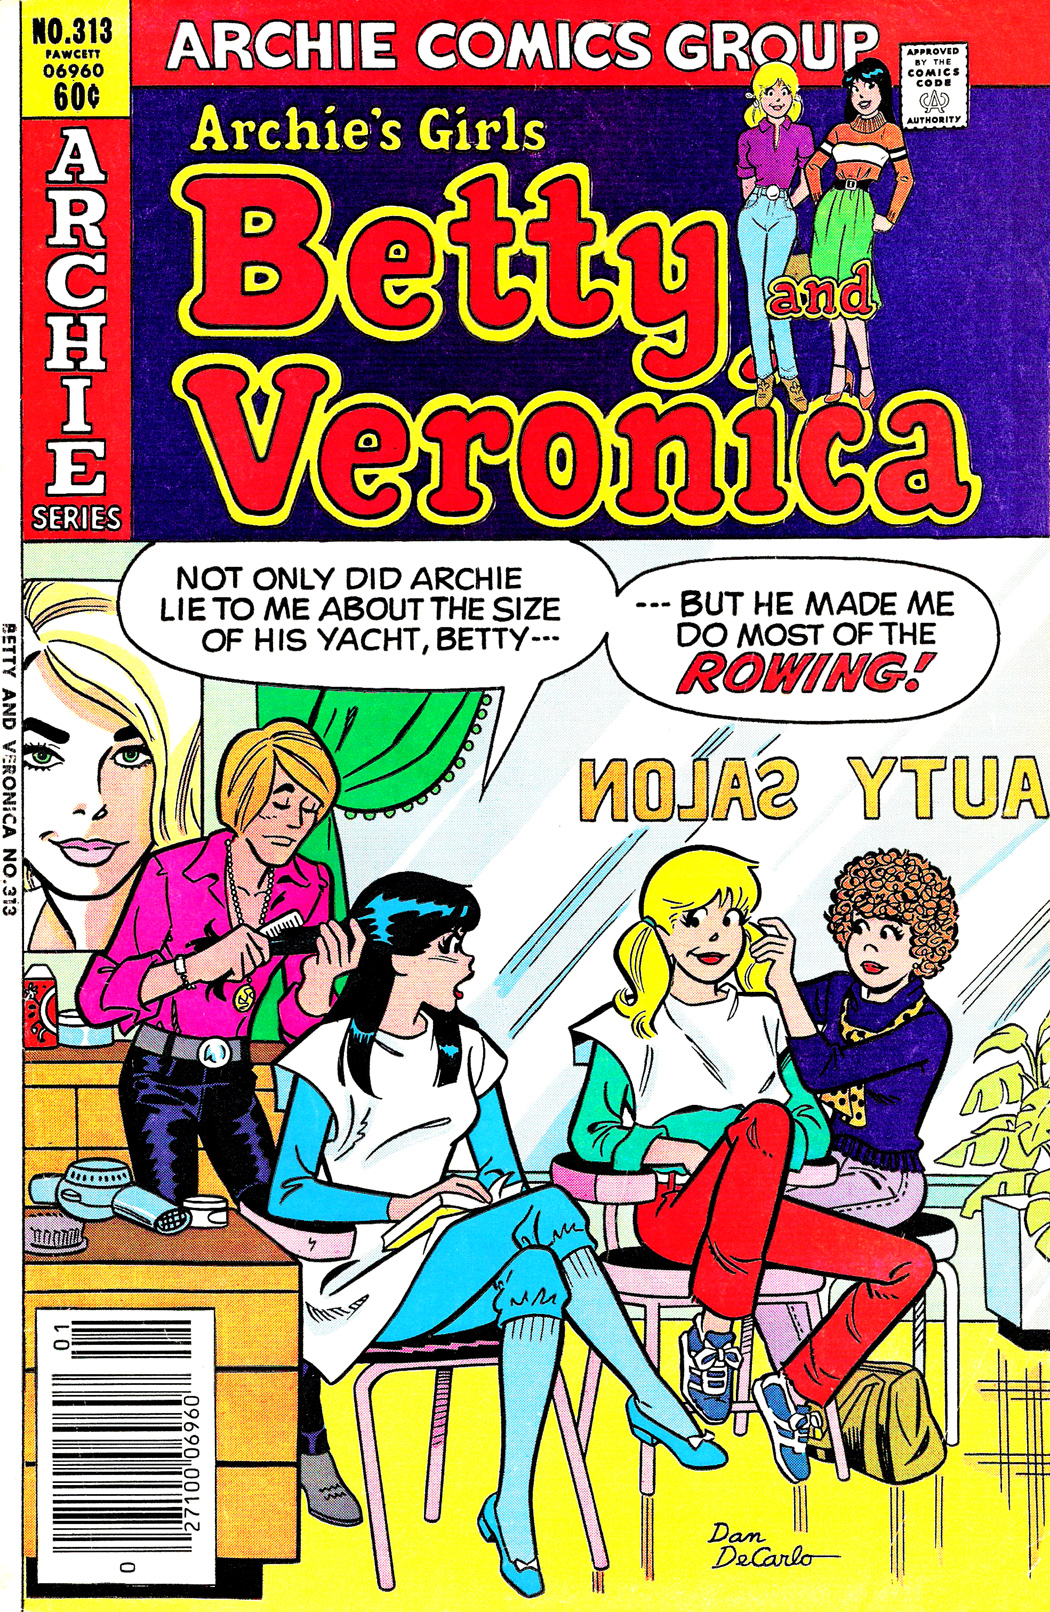 Read online Archie's Girls Betty and Veronica comic -  Issue #313 - 1